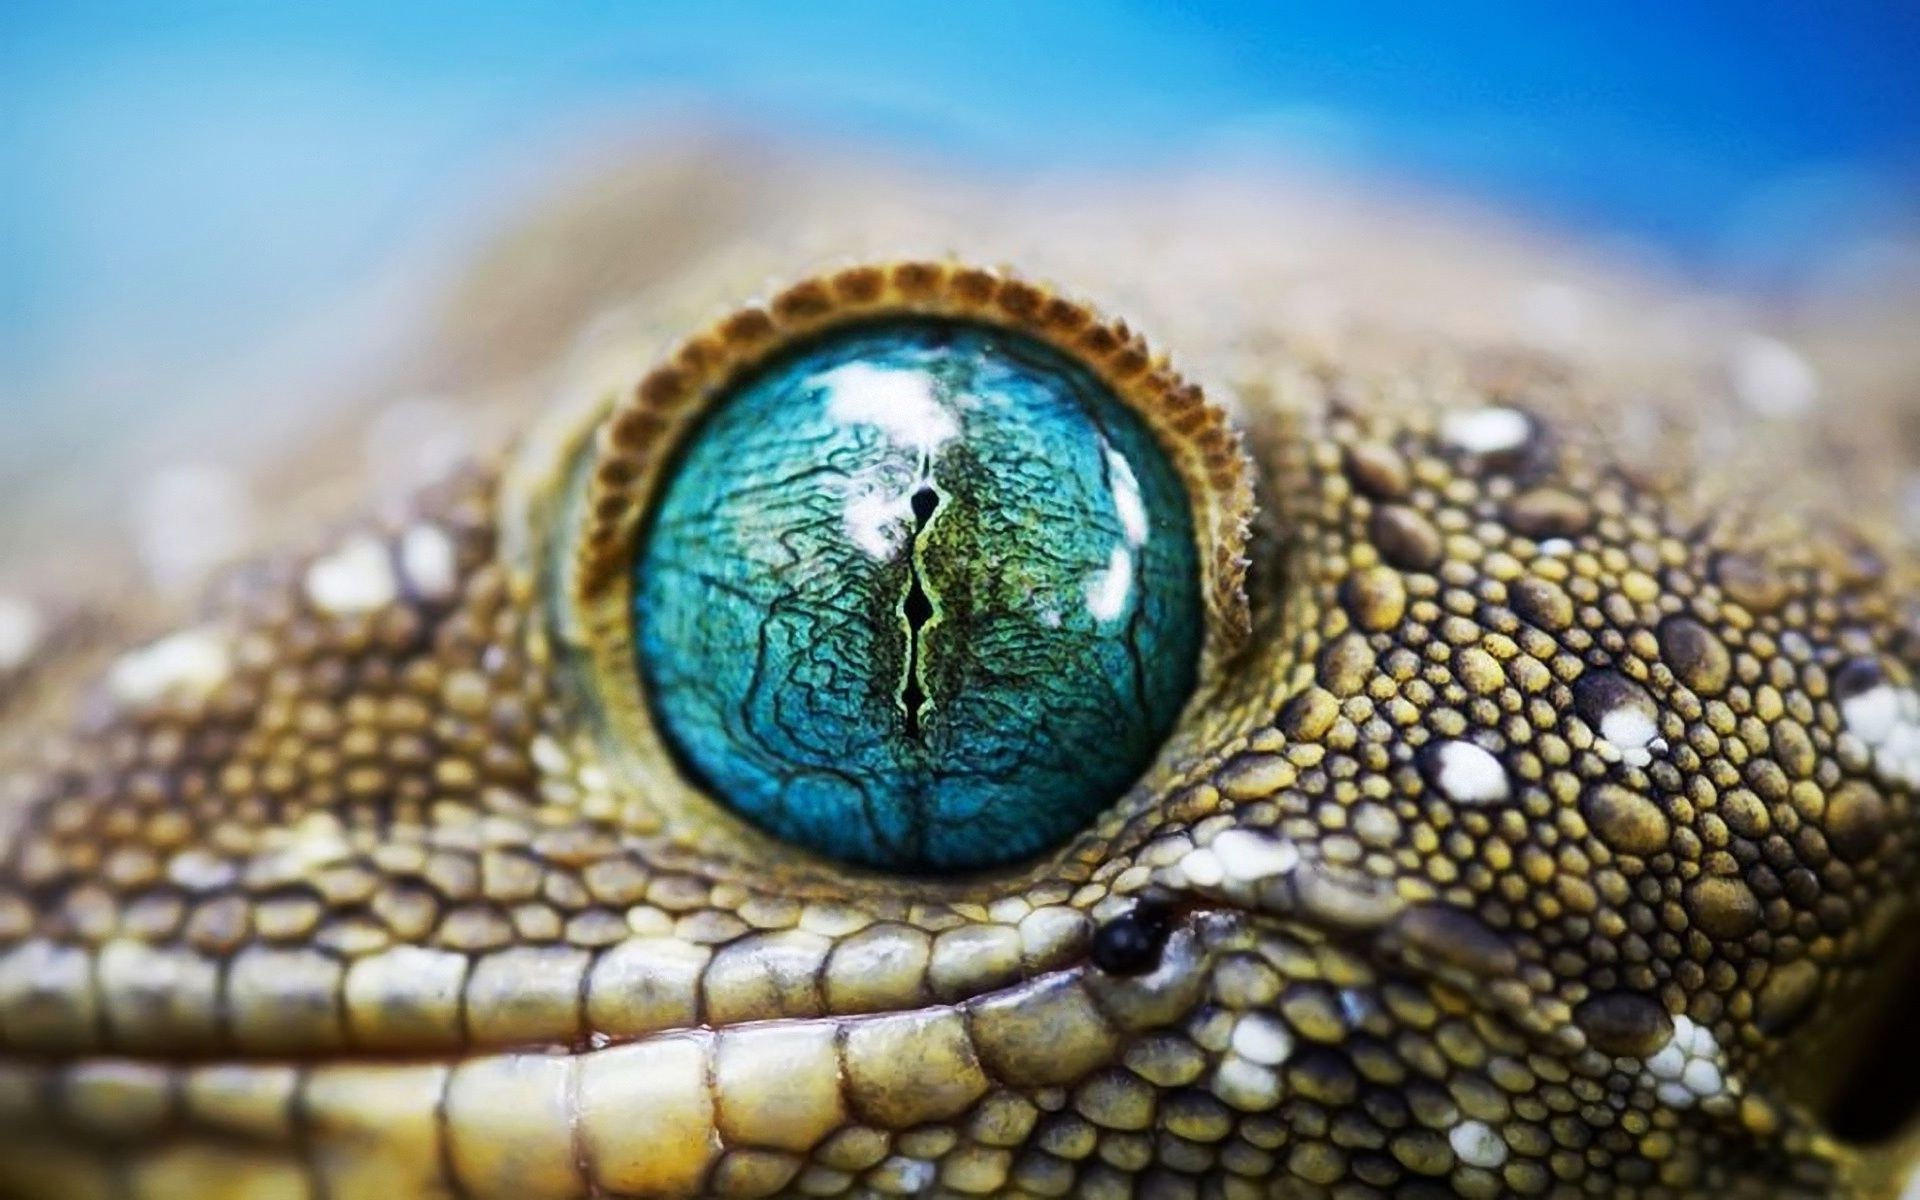 Lizard Macro Blue Eye | Augen | Pinterest | Blue eyes, Lizards and Eye